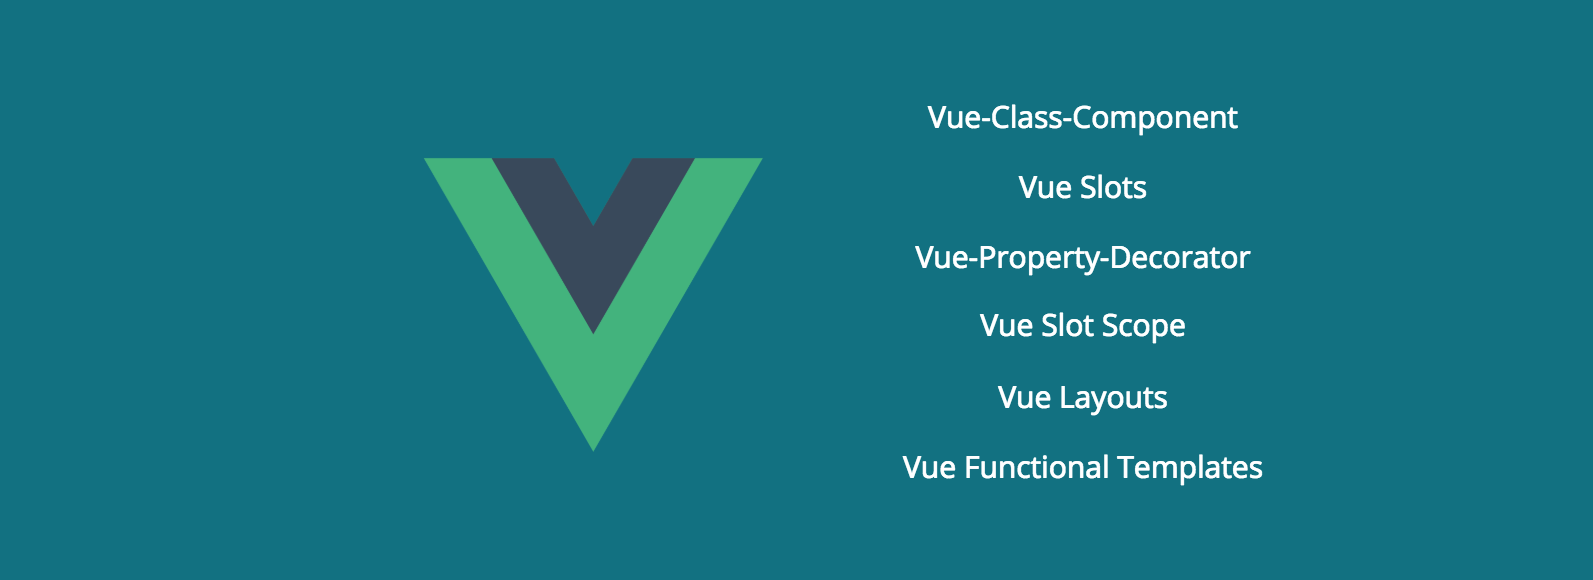 How to Build Vue Components like a Pro 😎 - Bits and Pieces